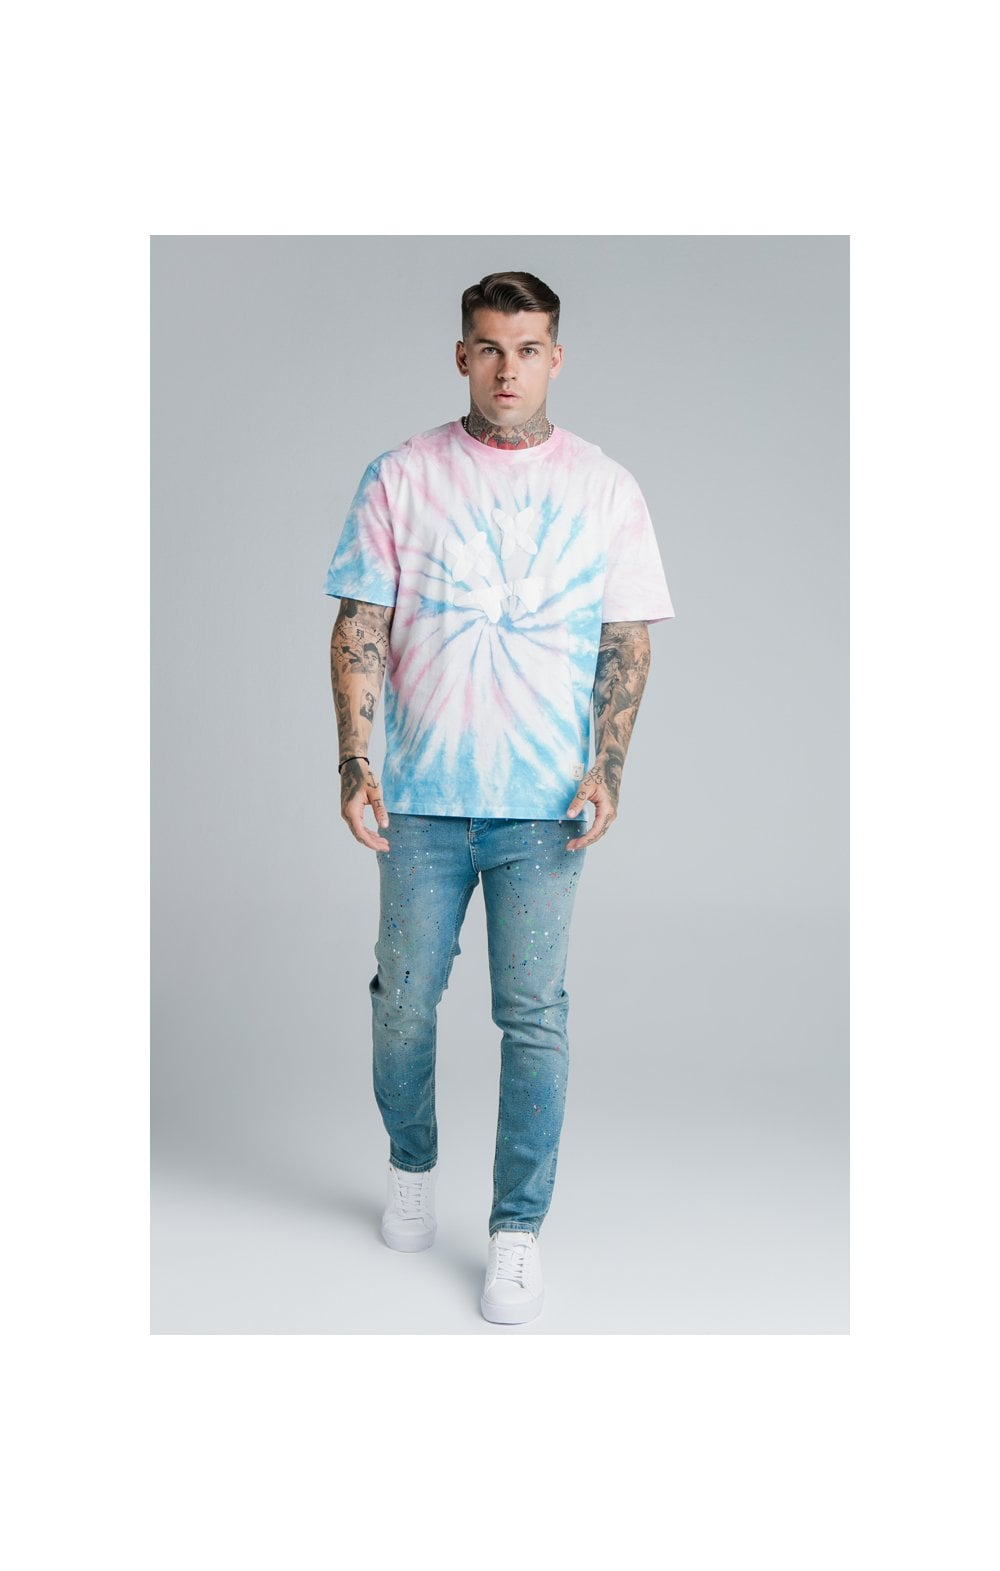 Load image into Gallery viewer, SikSilk X Steve Aoki S/S Oversize Essential Tee – Baby Pink & Blue Tie Dye (4)